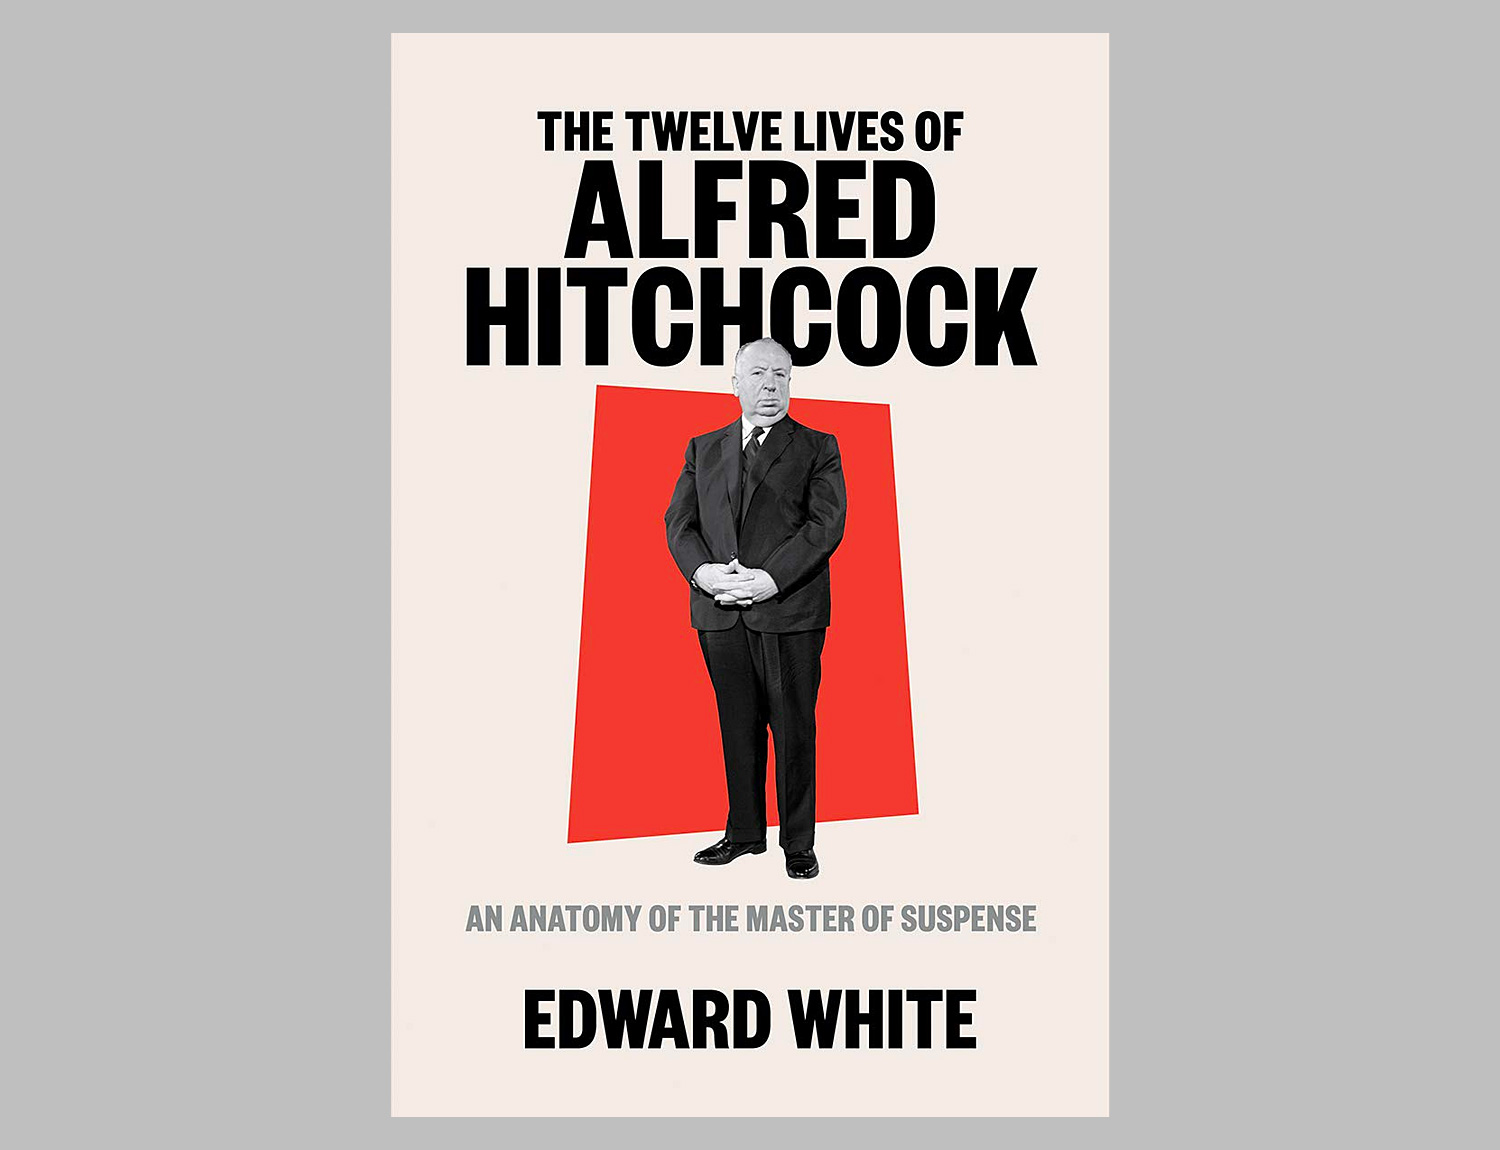 The Twelve Lives of Alfred Hitchcock at werd.com